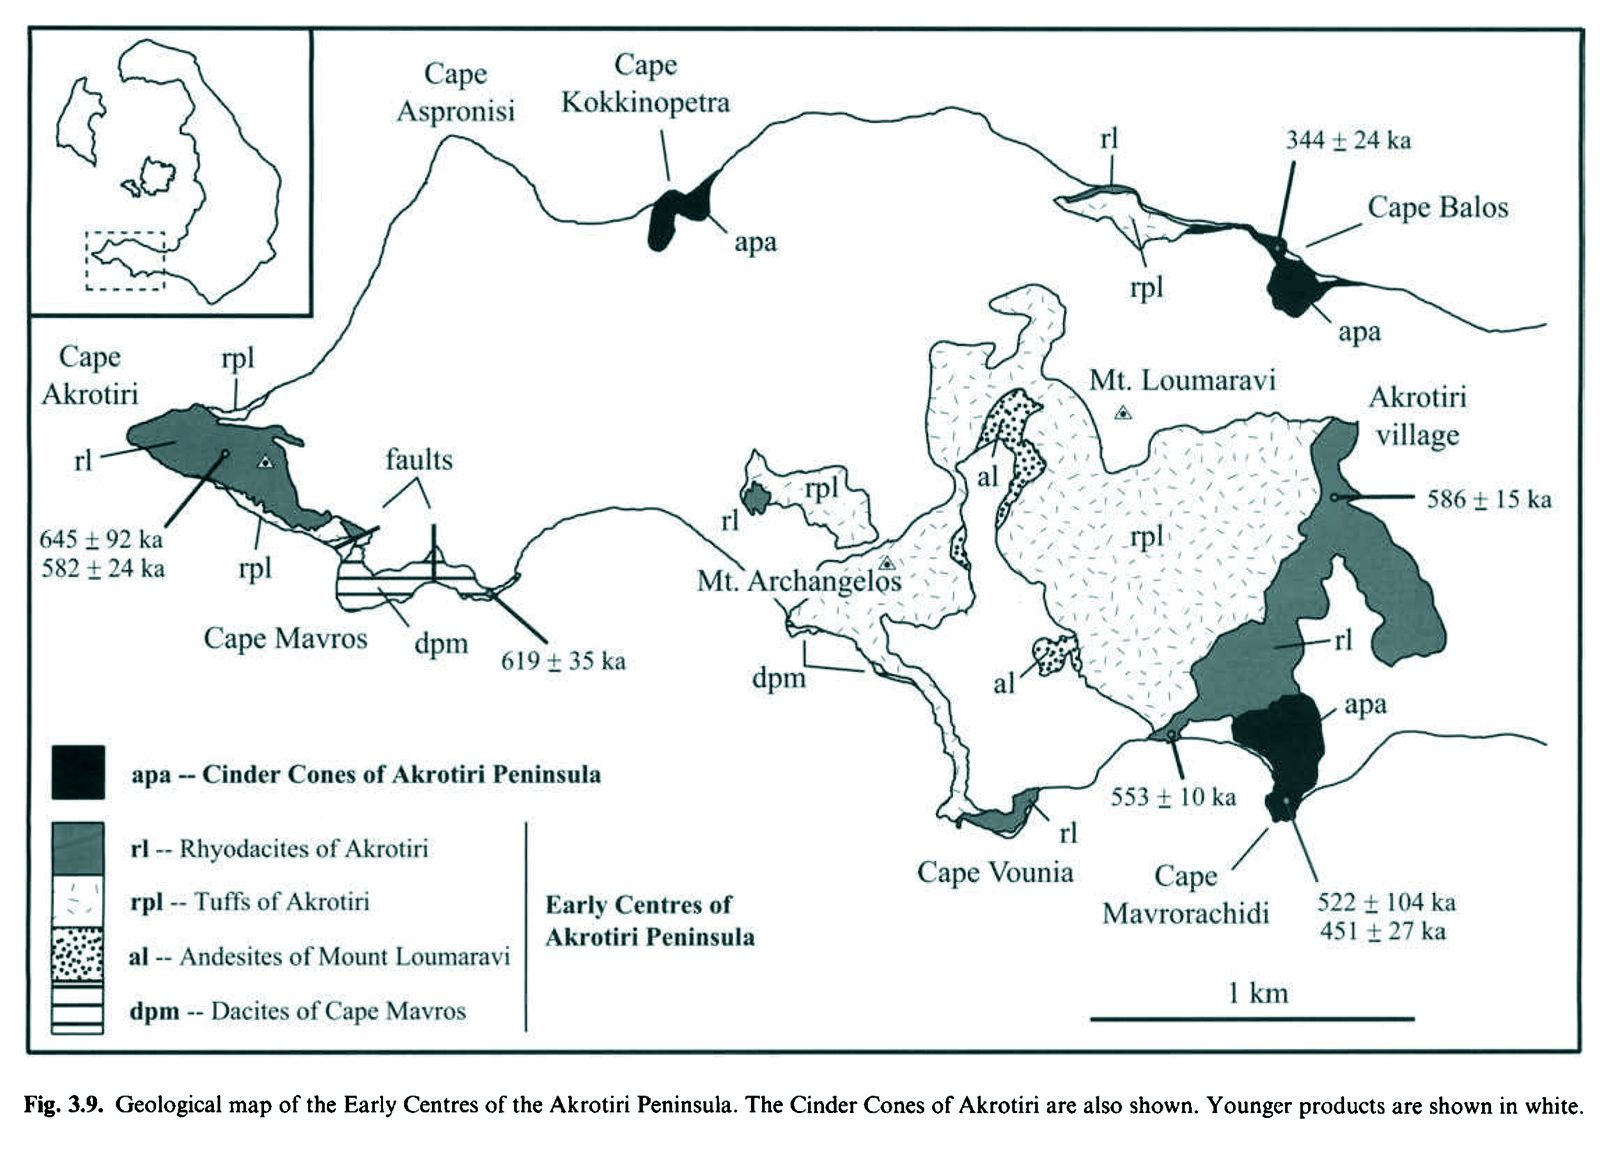 Santorini - Geological map of the first centers of the Akrotiri peninsula, with cinder cones in black, the youngest products are in white - Doc. Druitt & al 1999